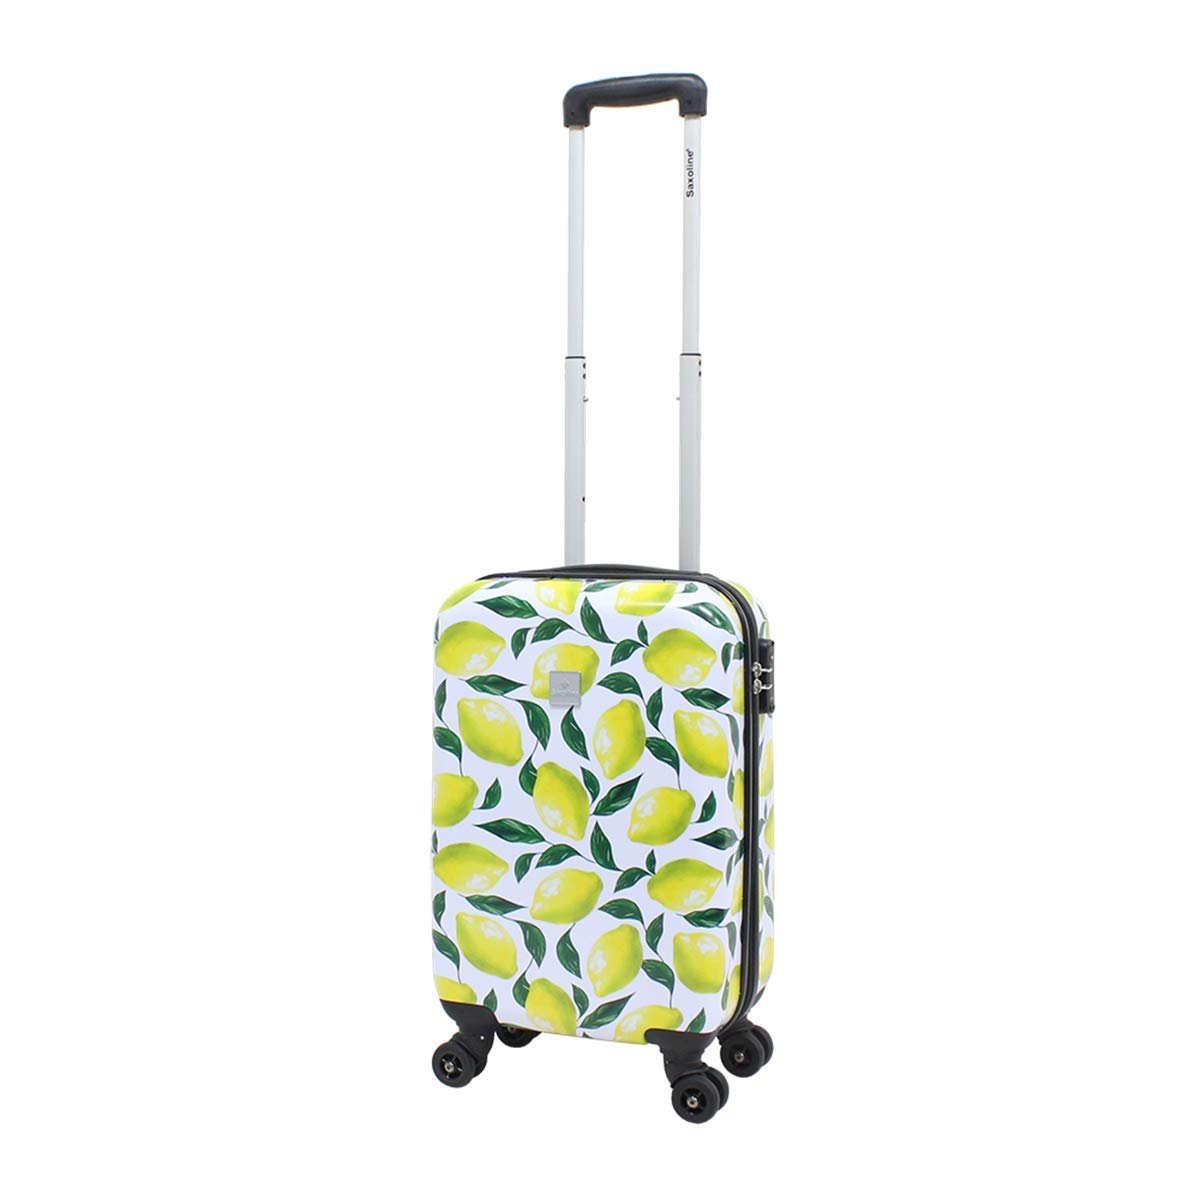 Image of Luggage Viaccio Saxoline Hard Case Hand Luggage Size S 55 cm Lemon